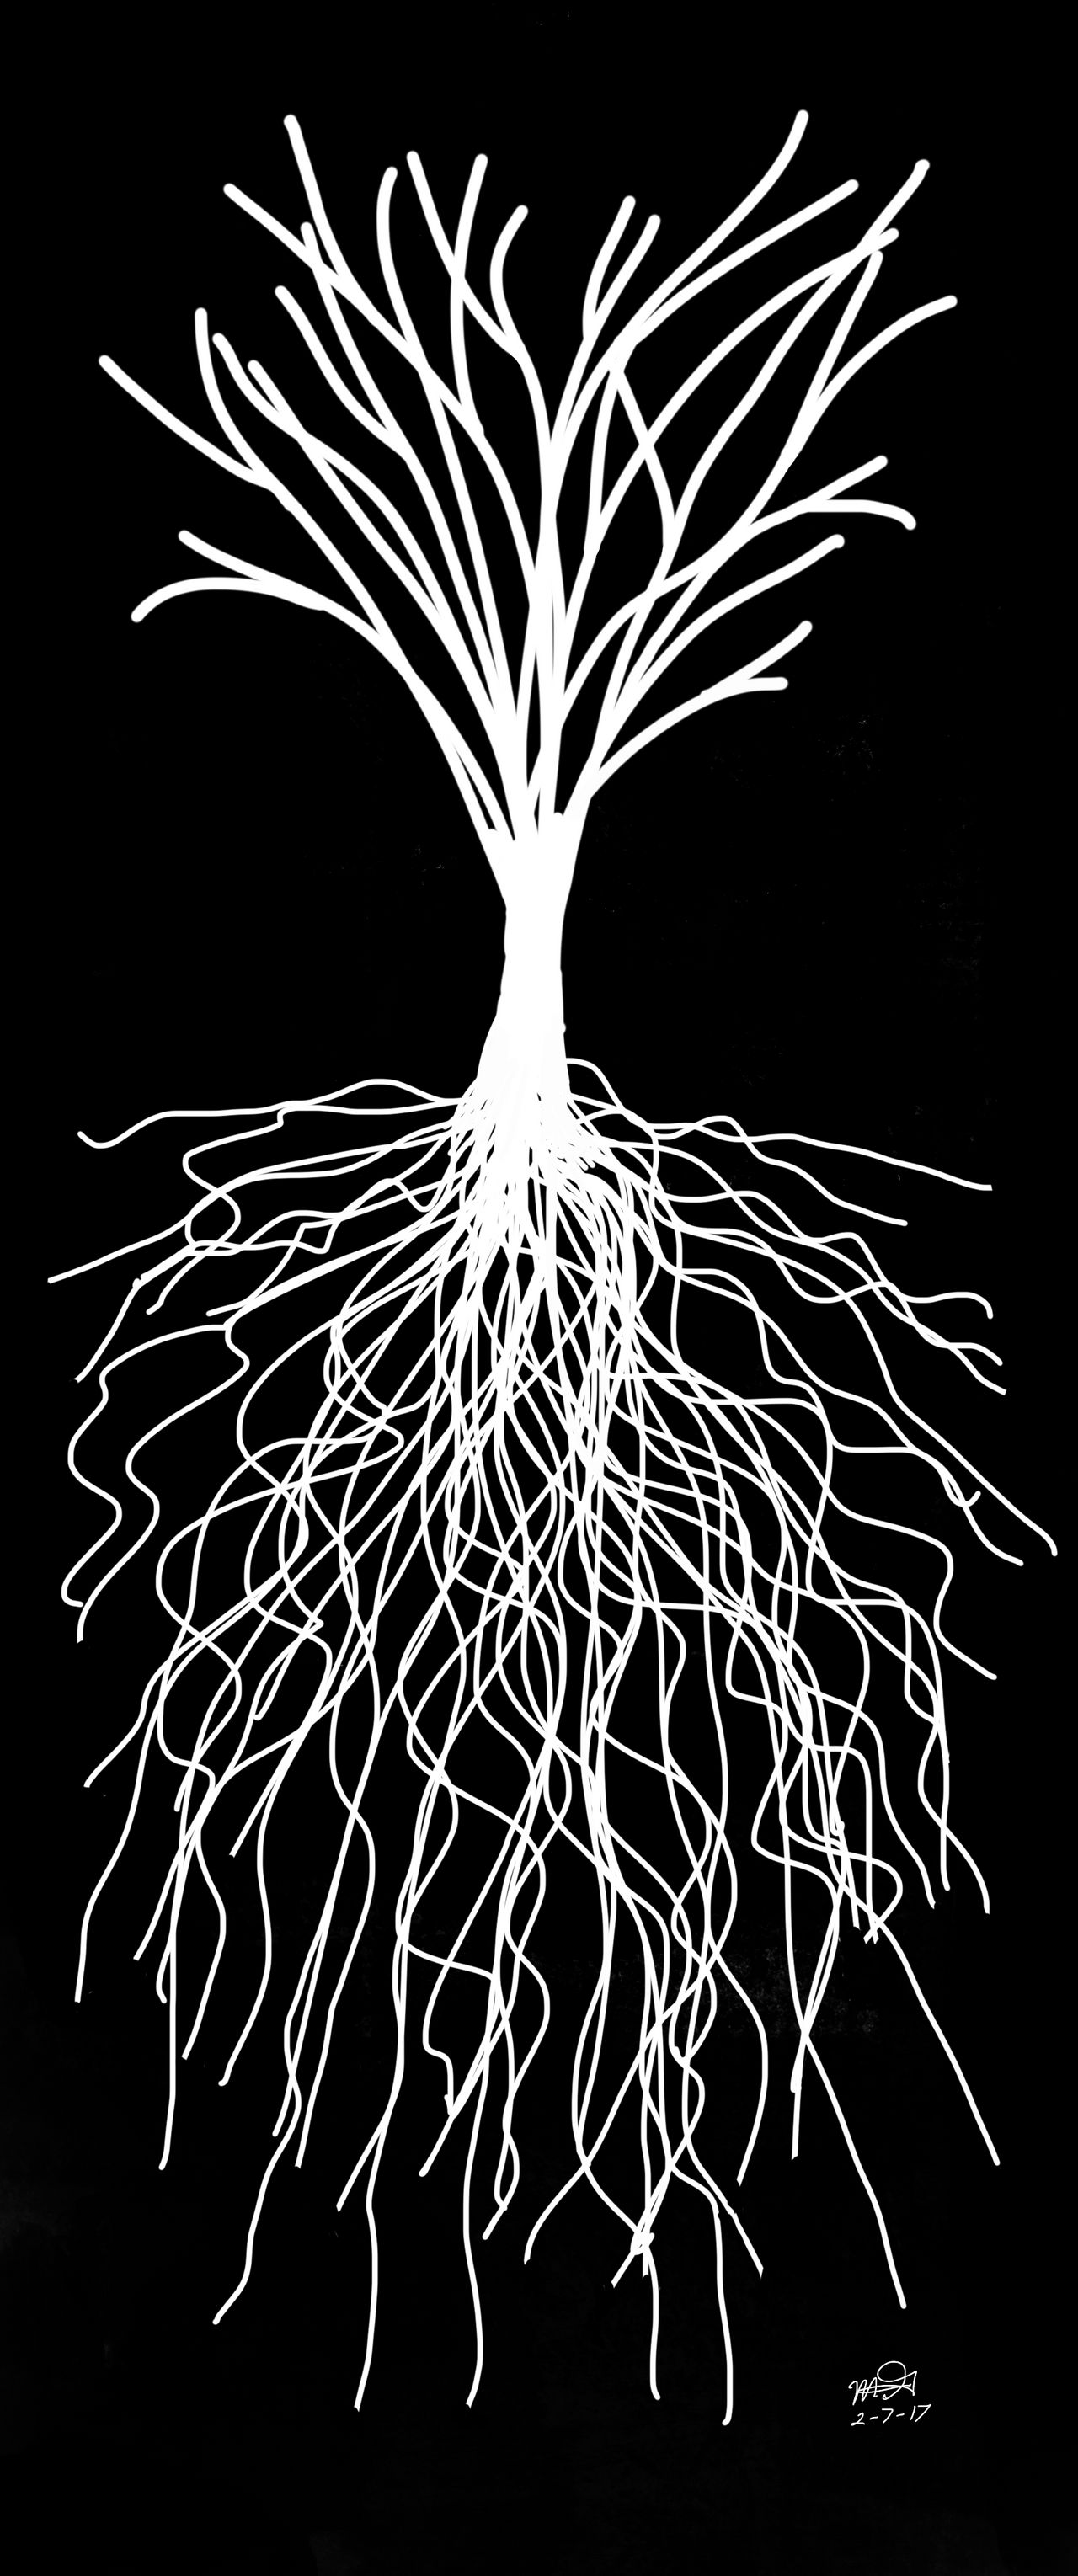 We all have our roots.